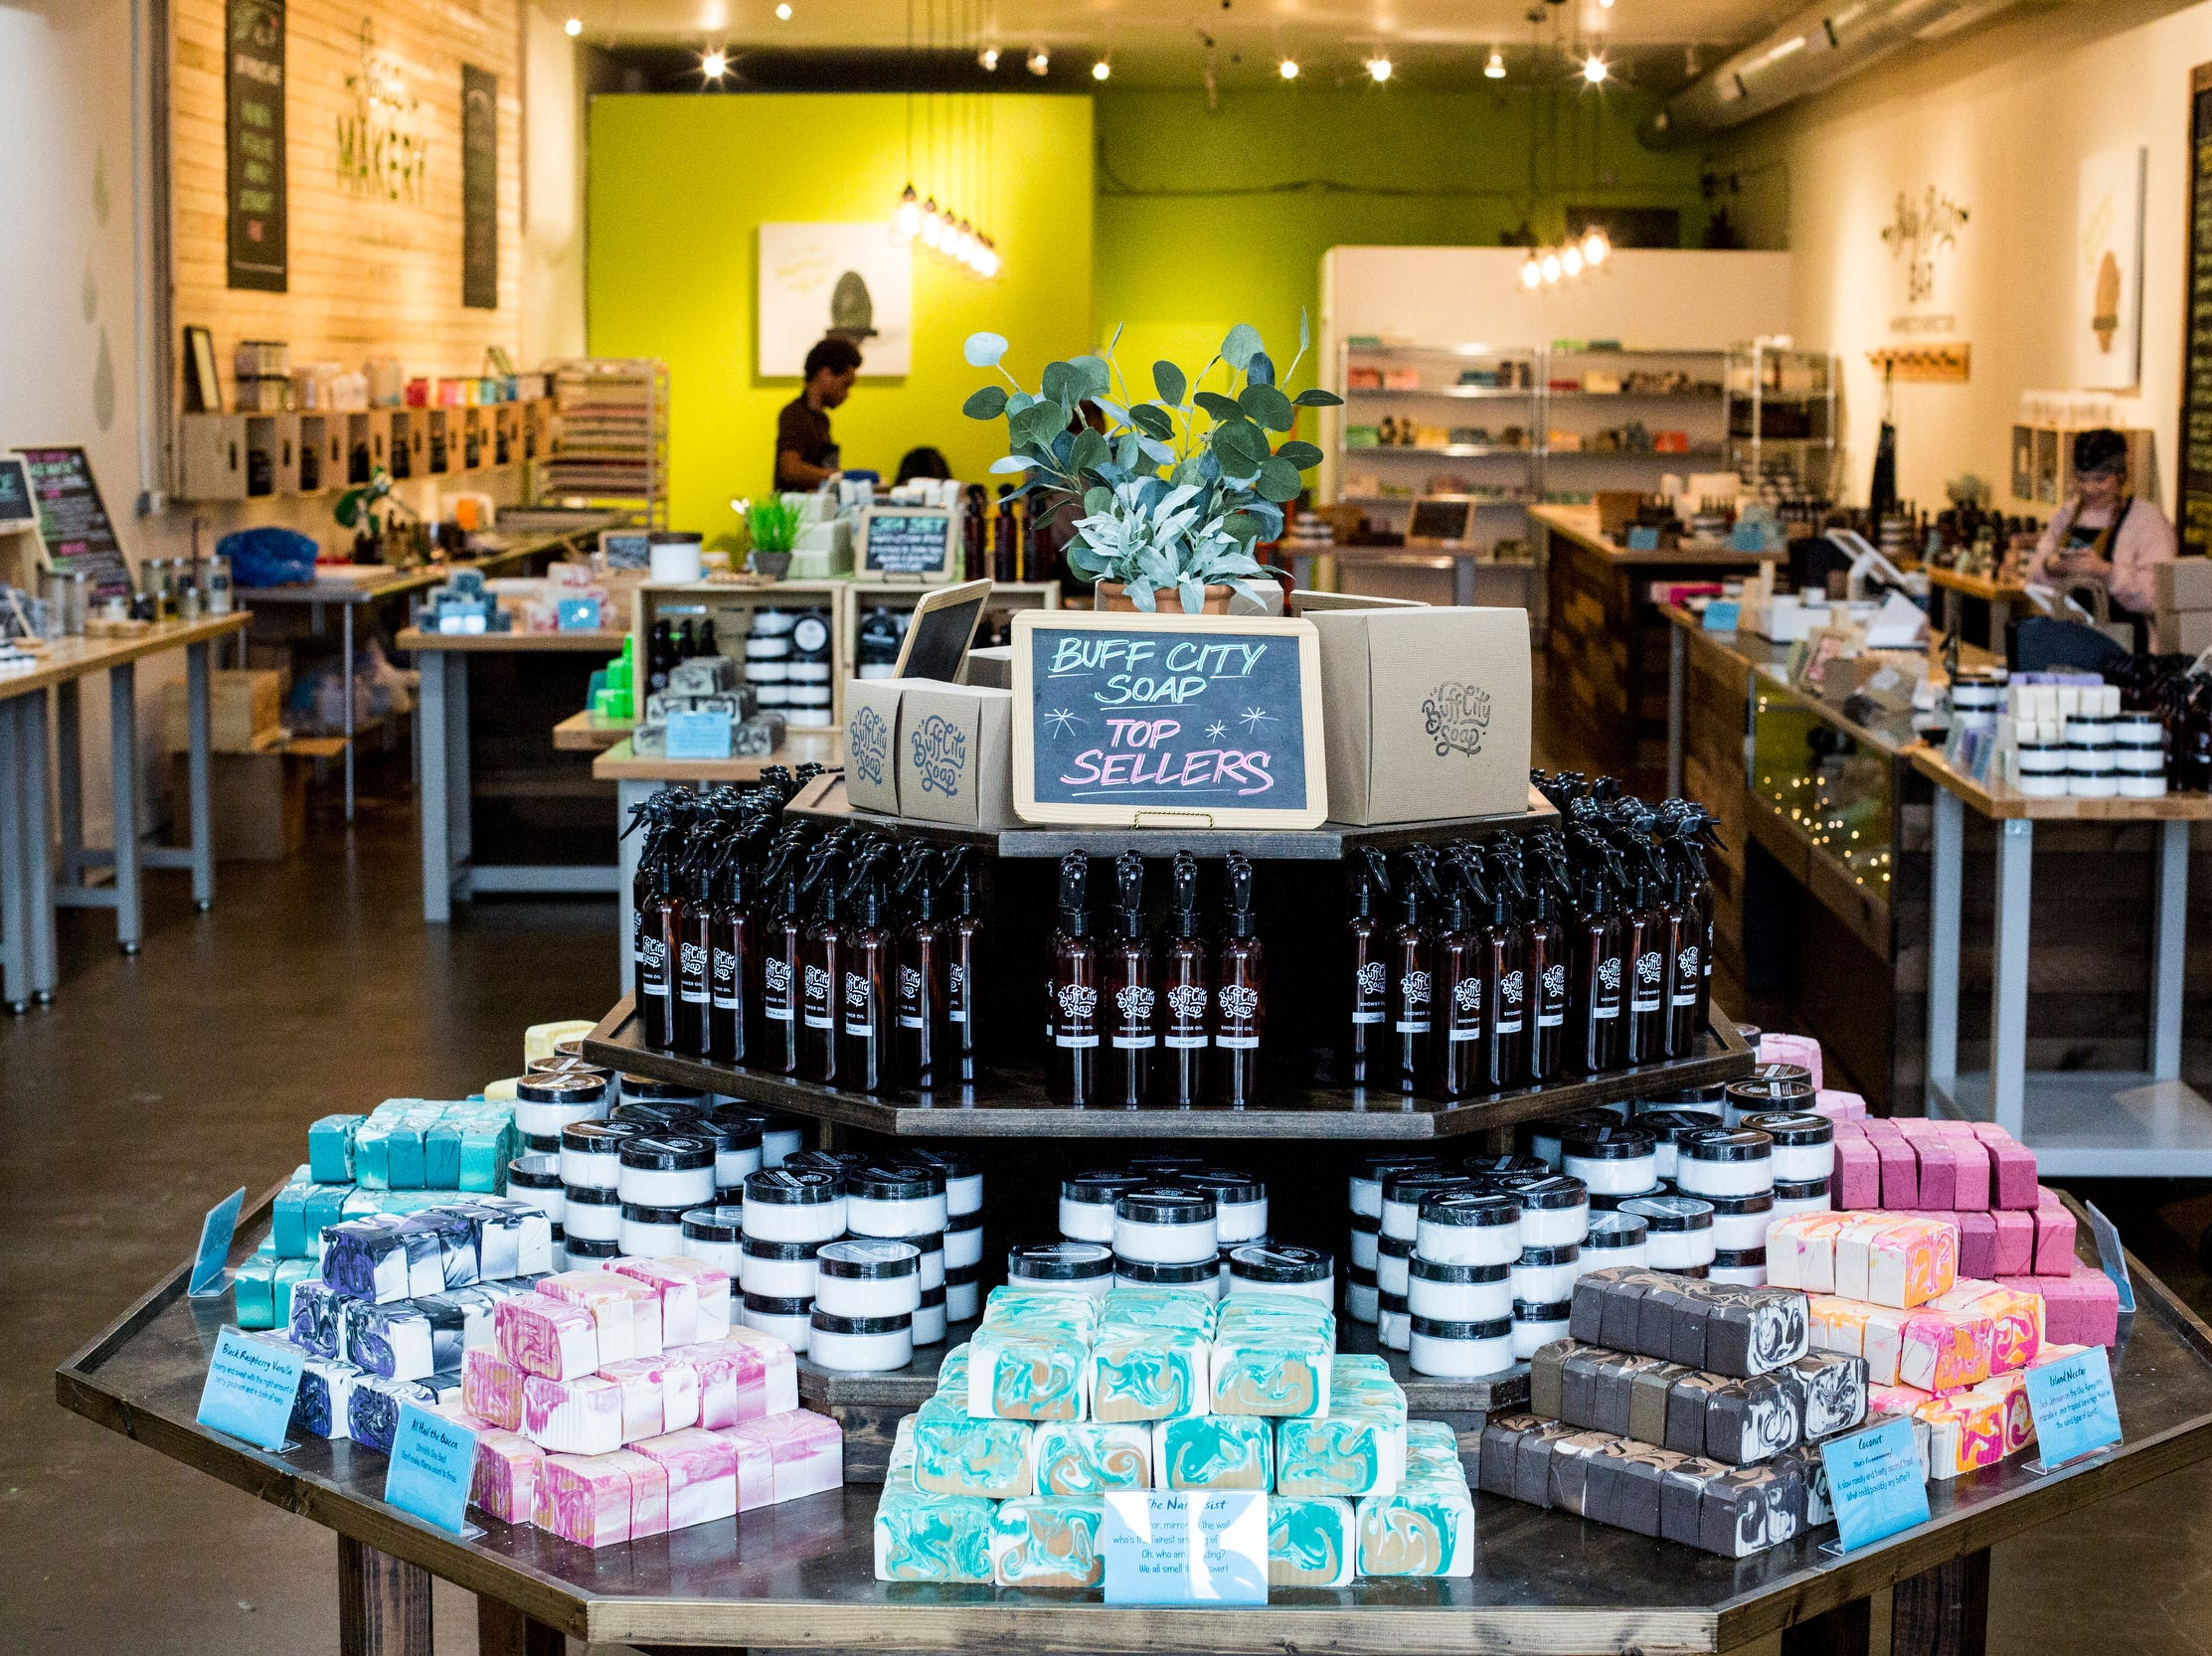 Buff City Soap offers a variety of soaps, bath bombs, scrubs and other bath and body products.